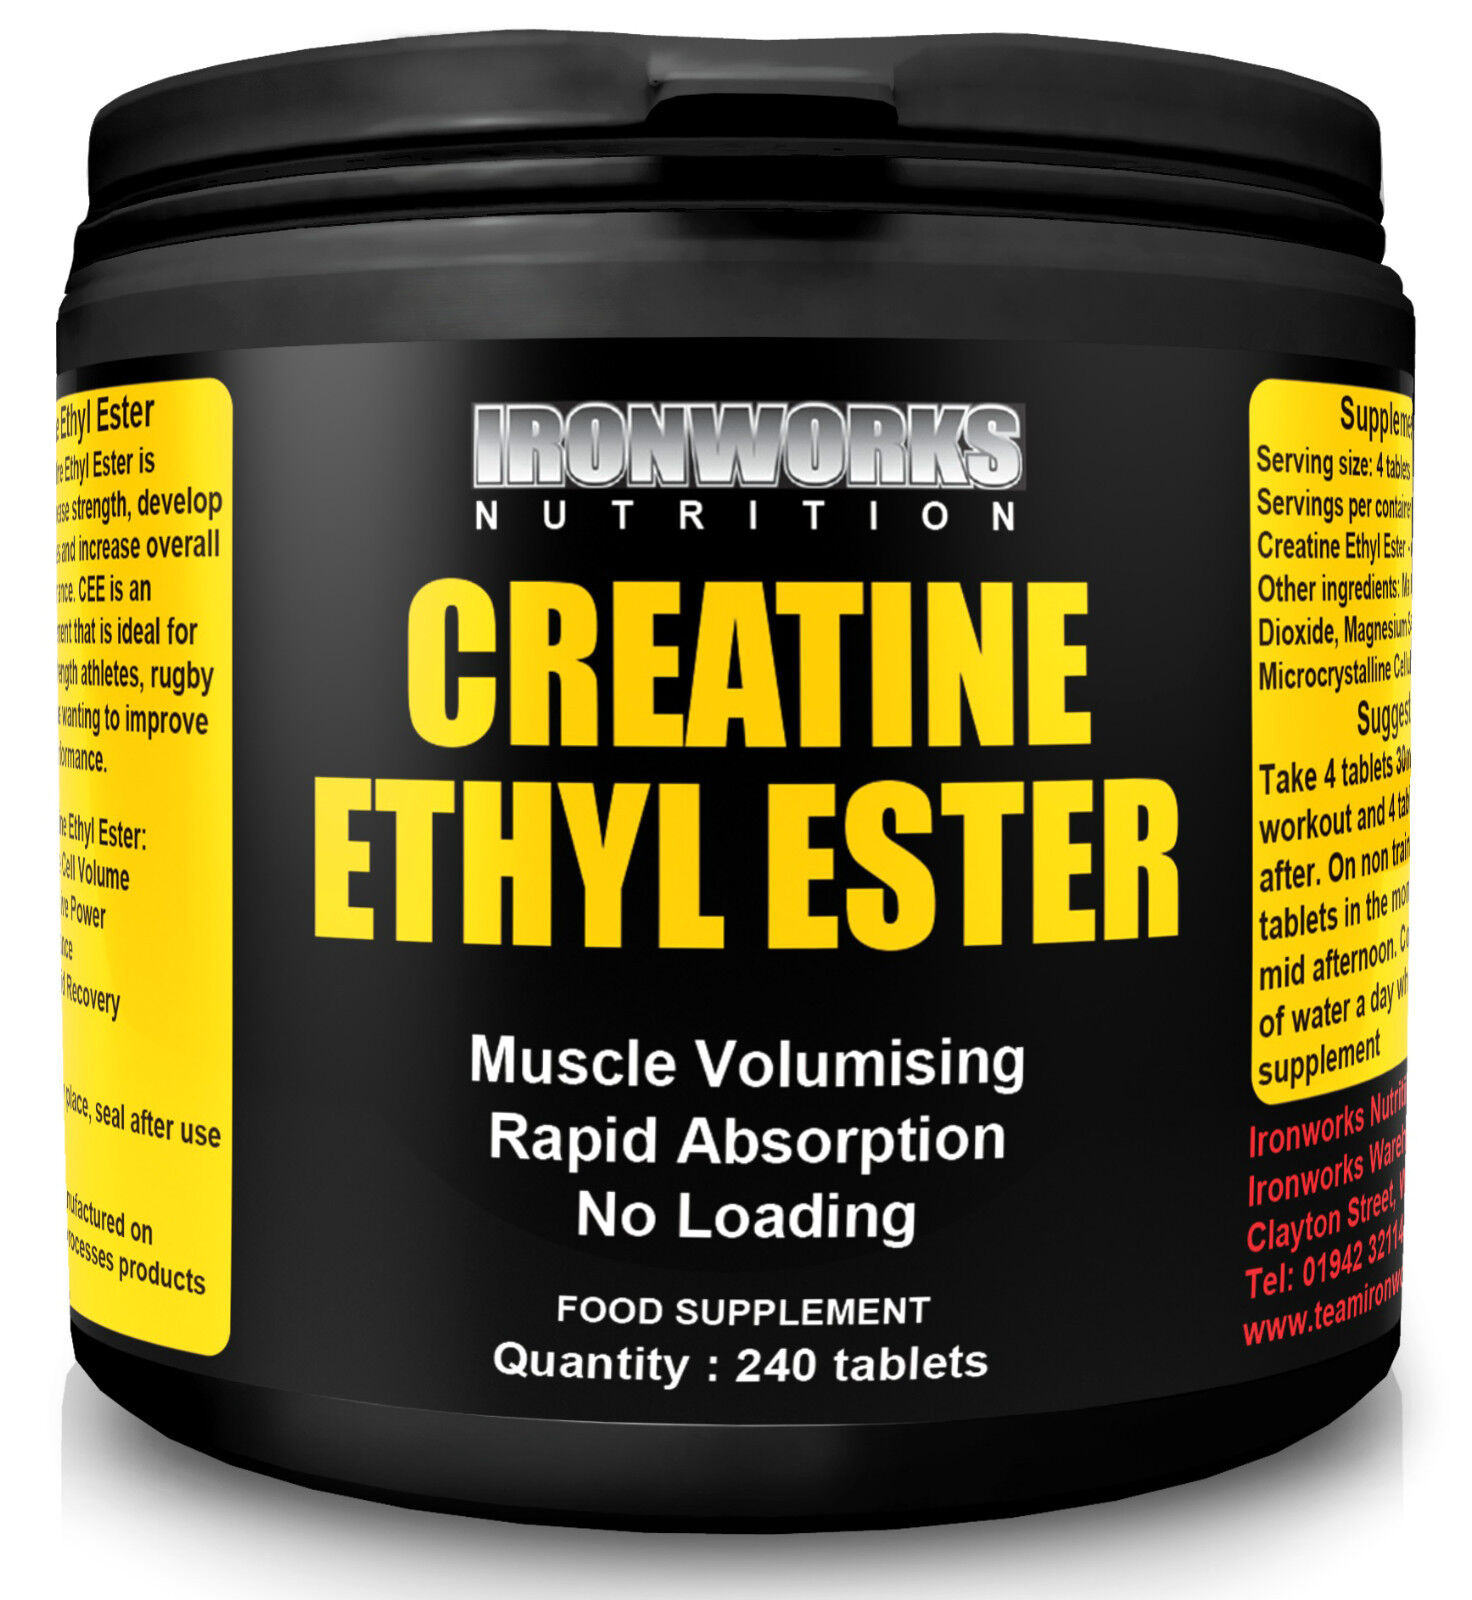 240 CREATINE ETHYL ESTER ANABOLIC GROWTH PILLS TABLETS | eBay